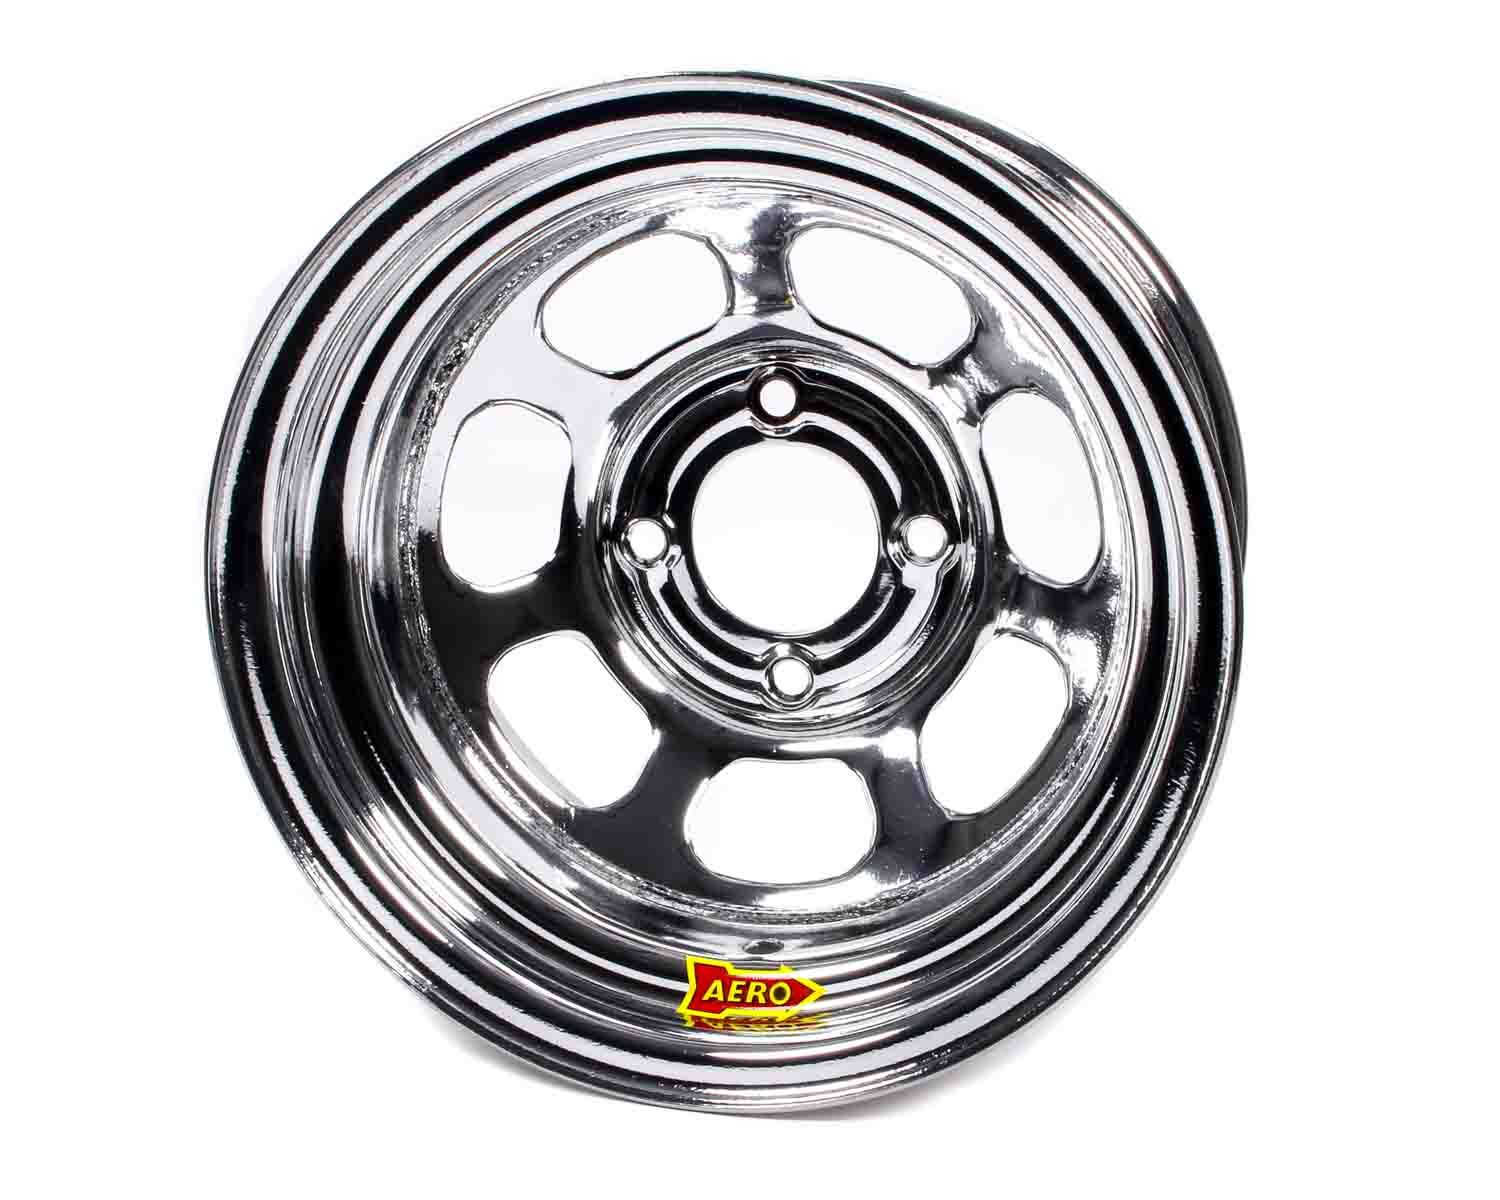 Aero Race 13x8 3in 4.25 Chrome  Wheel